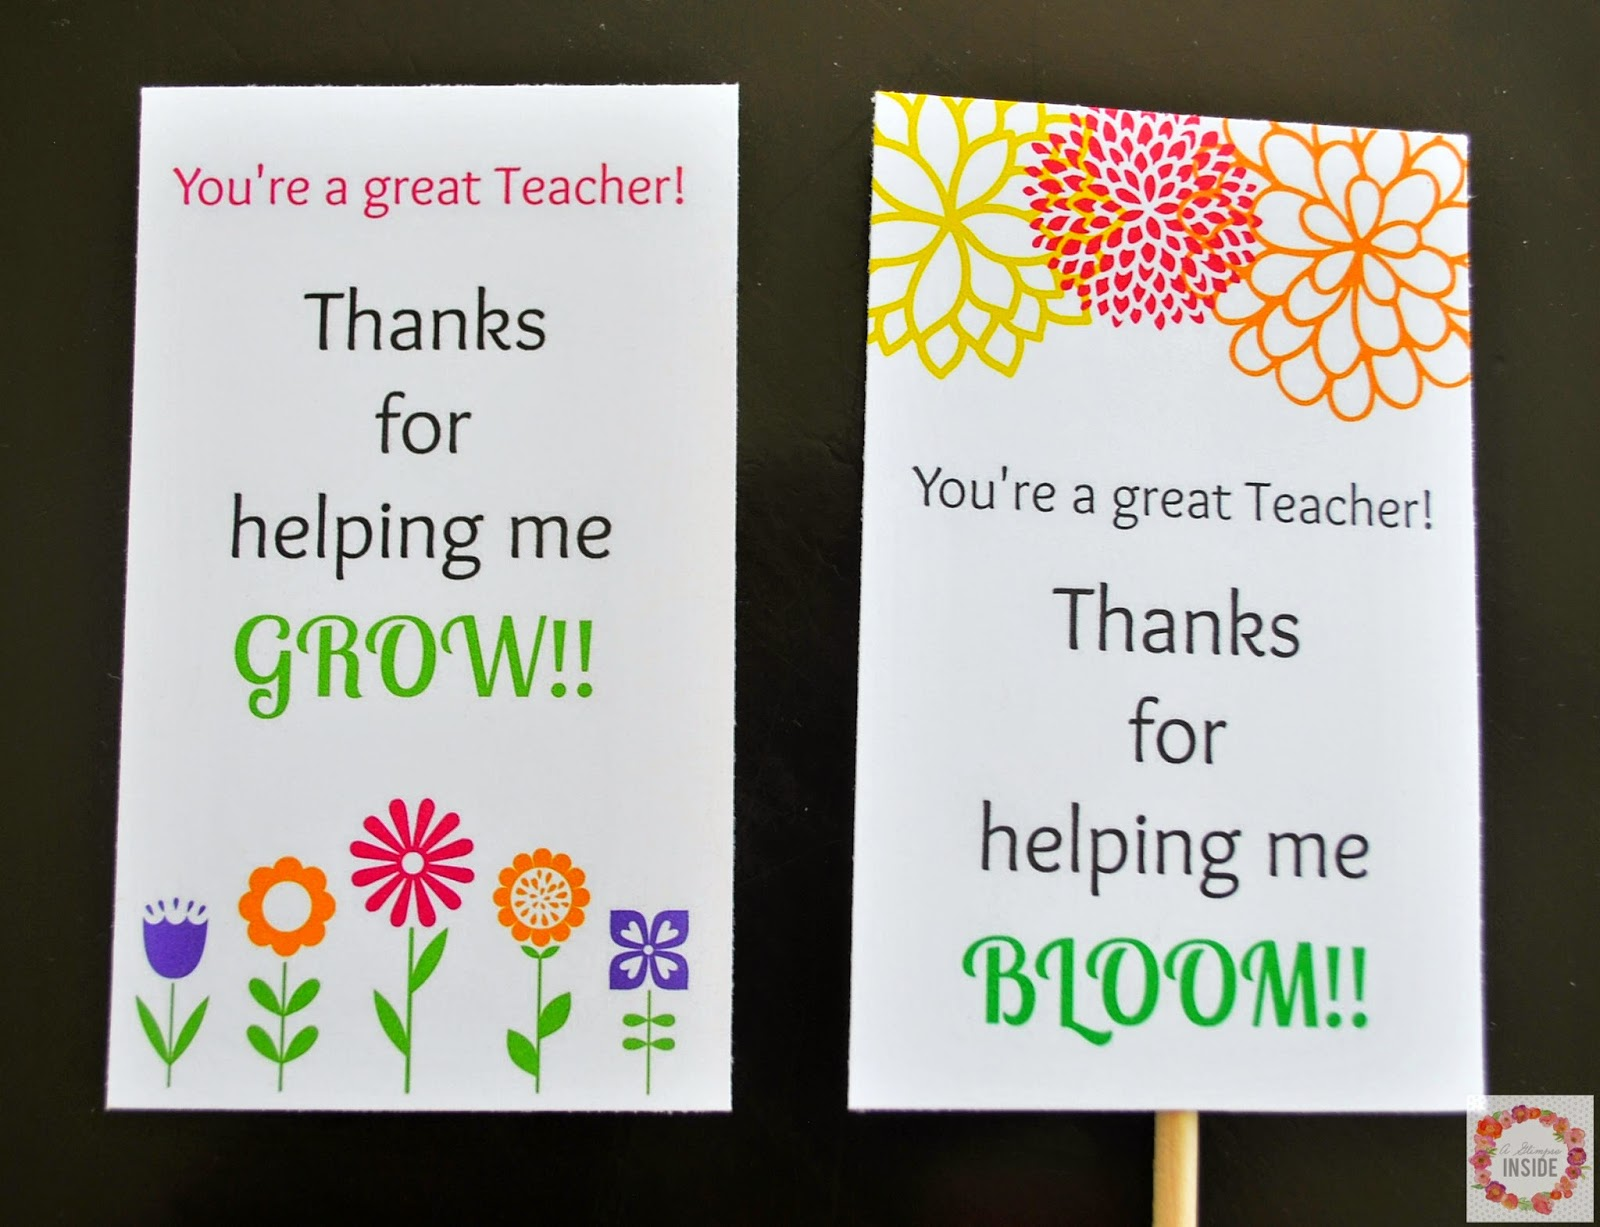 photograph about Teacher Appreciation Card Printable identify Trainer Appreciation Card Printables A Appear In just